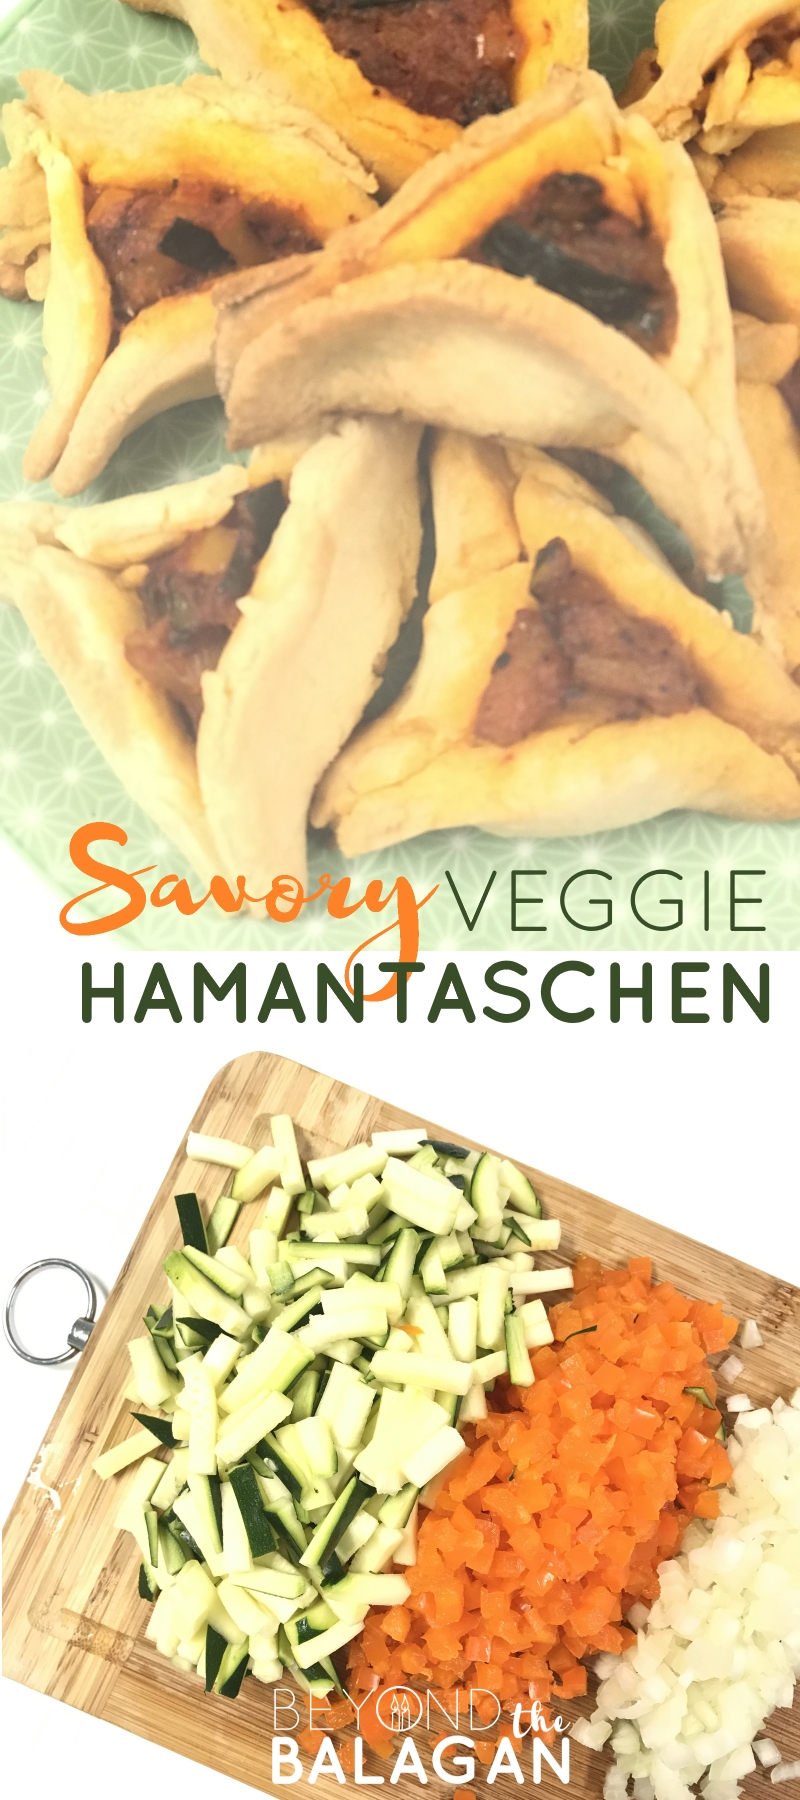 These delicious, savory veggie hamantaschen will make the perfect side dish at your Purim party!